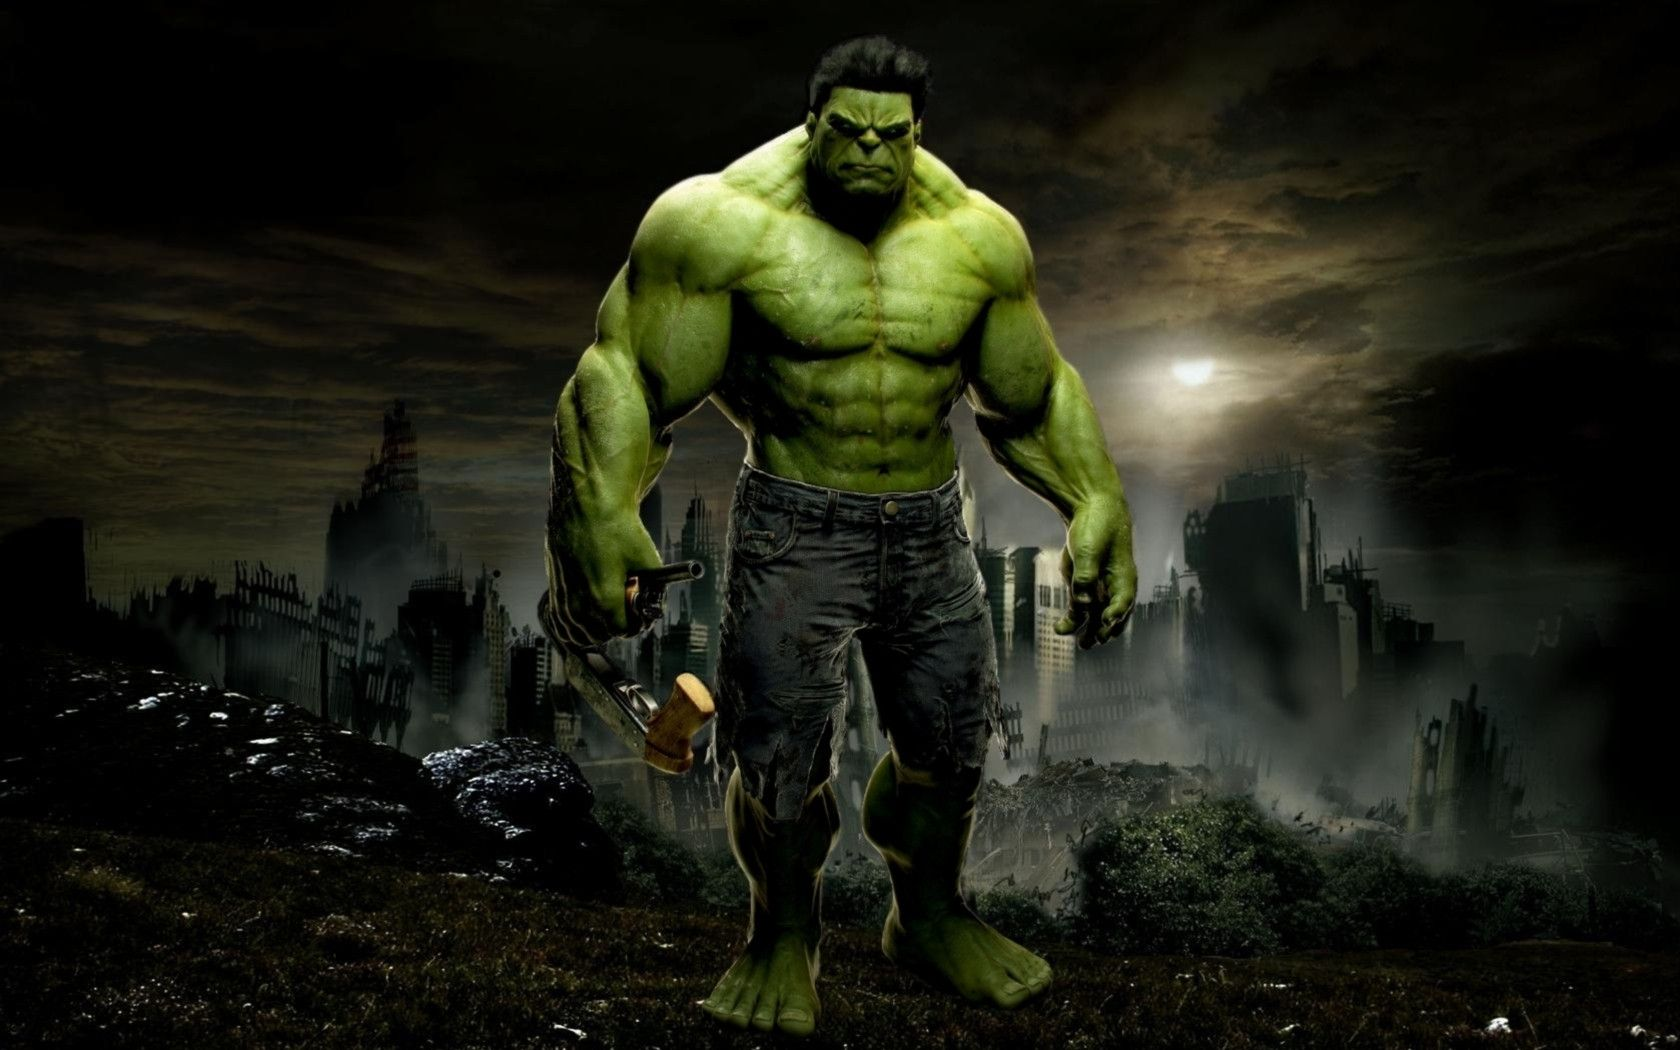 hulk marvel avenger superhero desktop background hd wallpaper